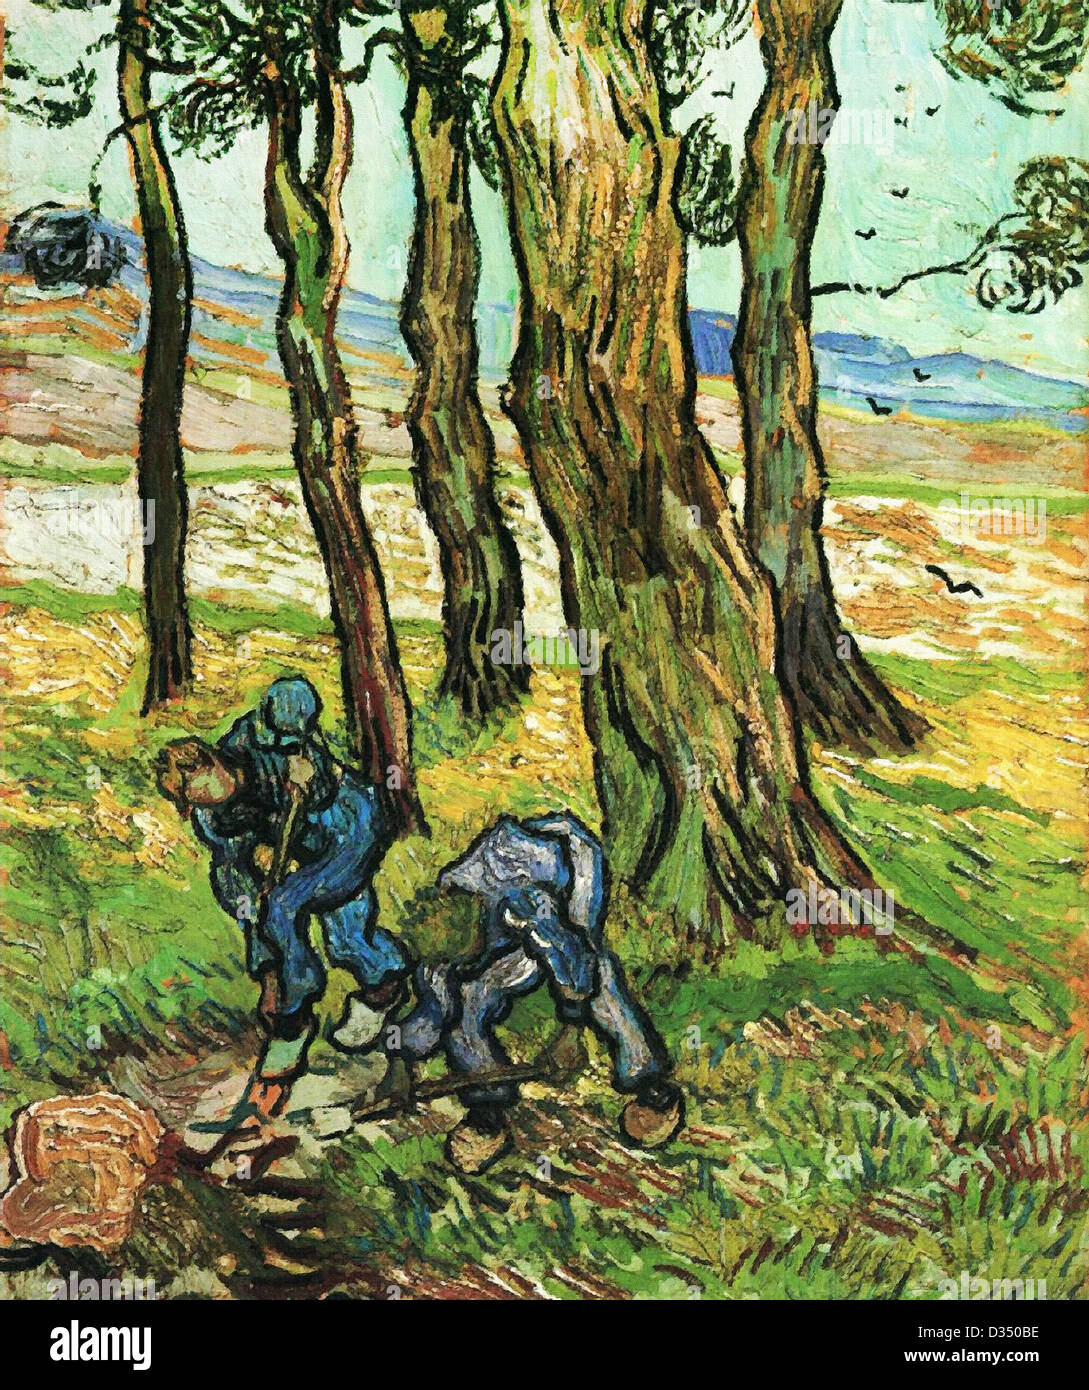 Vincent van Gogh, Two Diggers Among Trees. 1889. Post-Impressionism. Oil on canvas. Detroit Institute of Arts, Detroit, - Stock Image